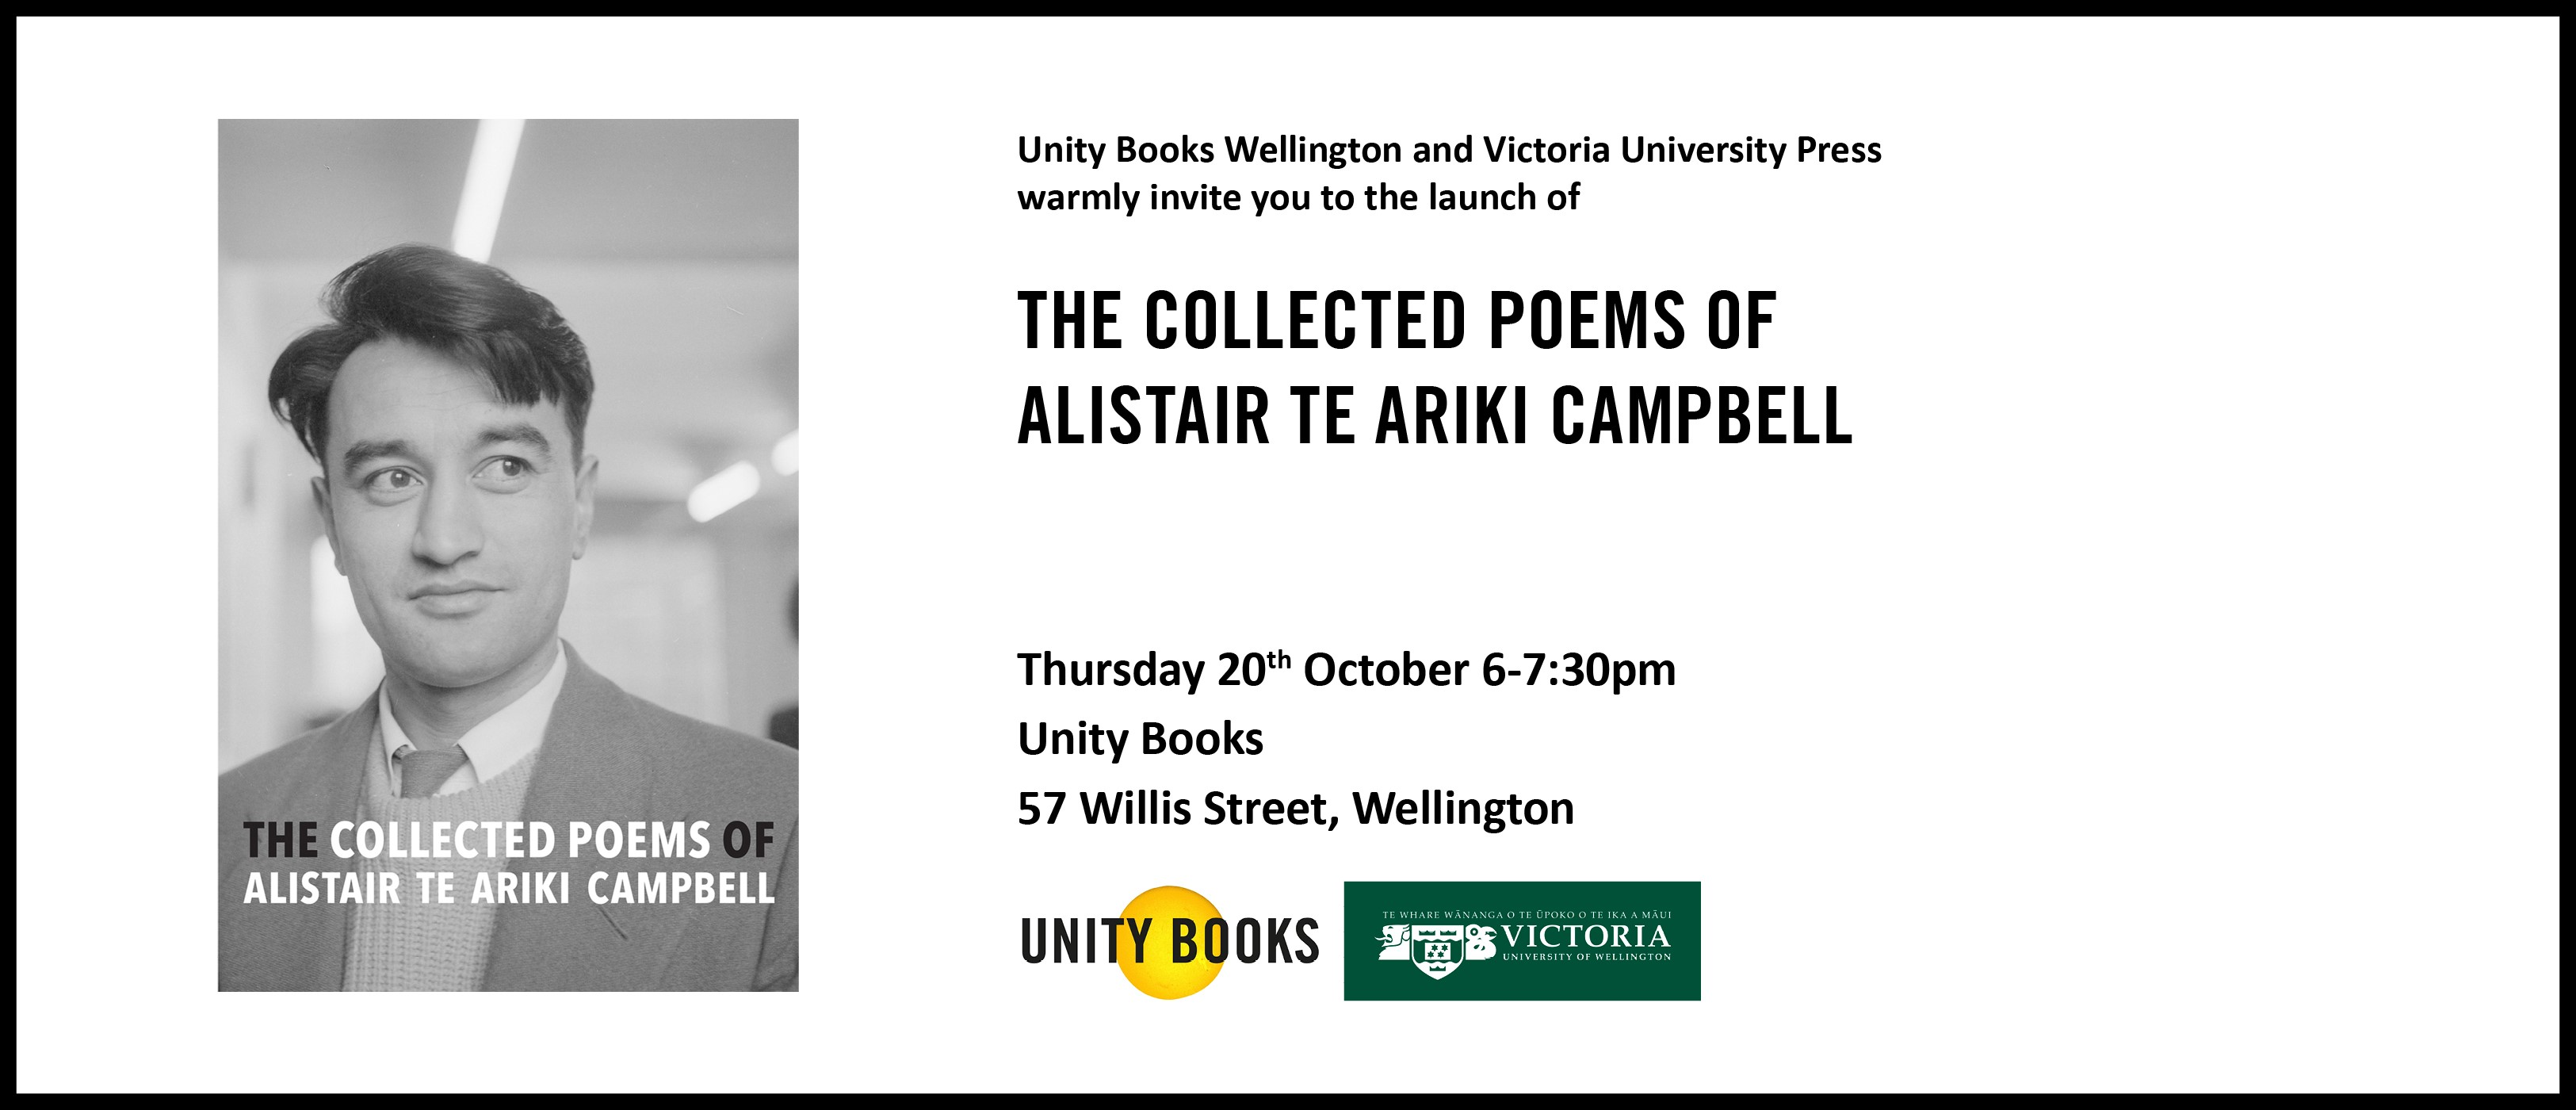 an introduction to the poetry of albert wendt apirana taylor alistair te ariki campbell hone tuwhare Preface: gregory o'brien introduction: mark williams a colonist in his garden — william pember reeves te whetu plains — edward tregear the silent land — charles brasch to introduce the landscape — allen curnow poem in the matukituki valley — james k baxter opening the book — john newton the womb — apirana taylor.